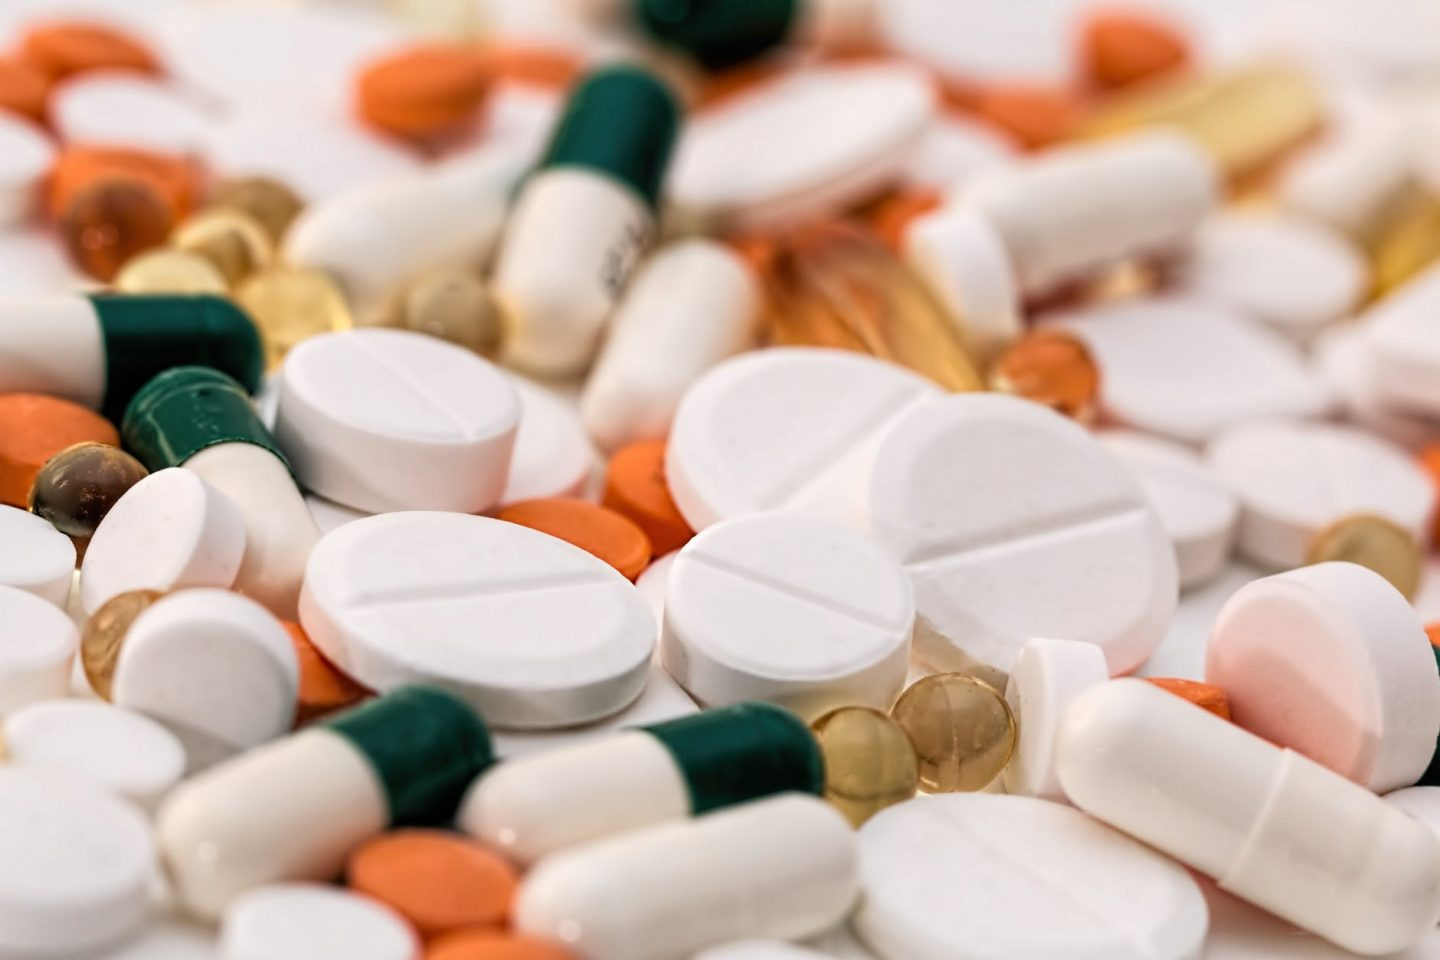 Fatigue: Assorted pills and supplements spread out on a table.